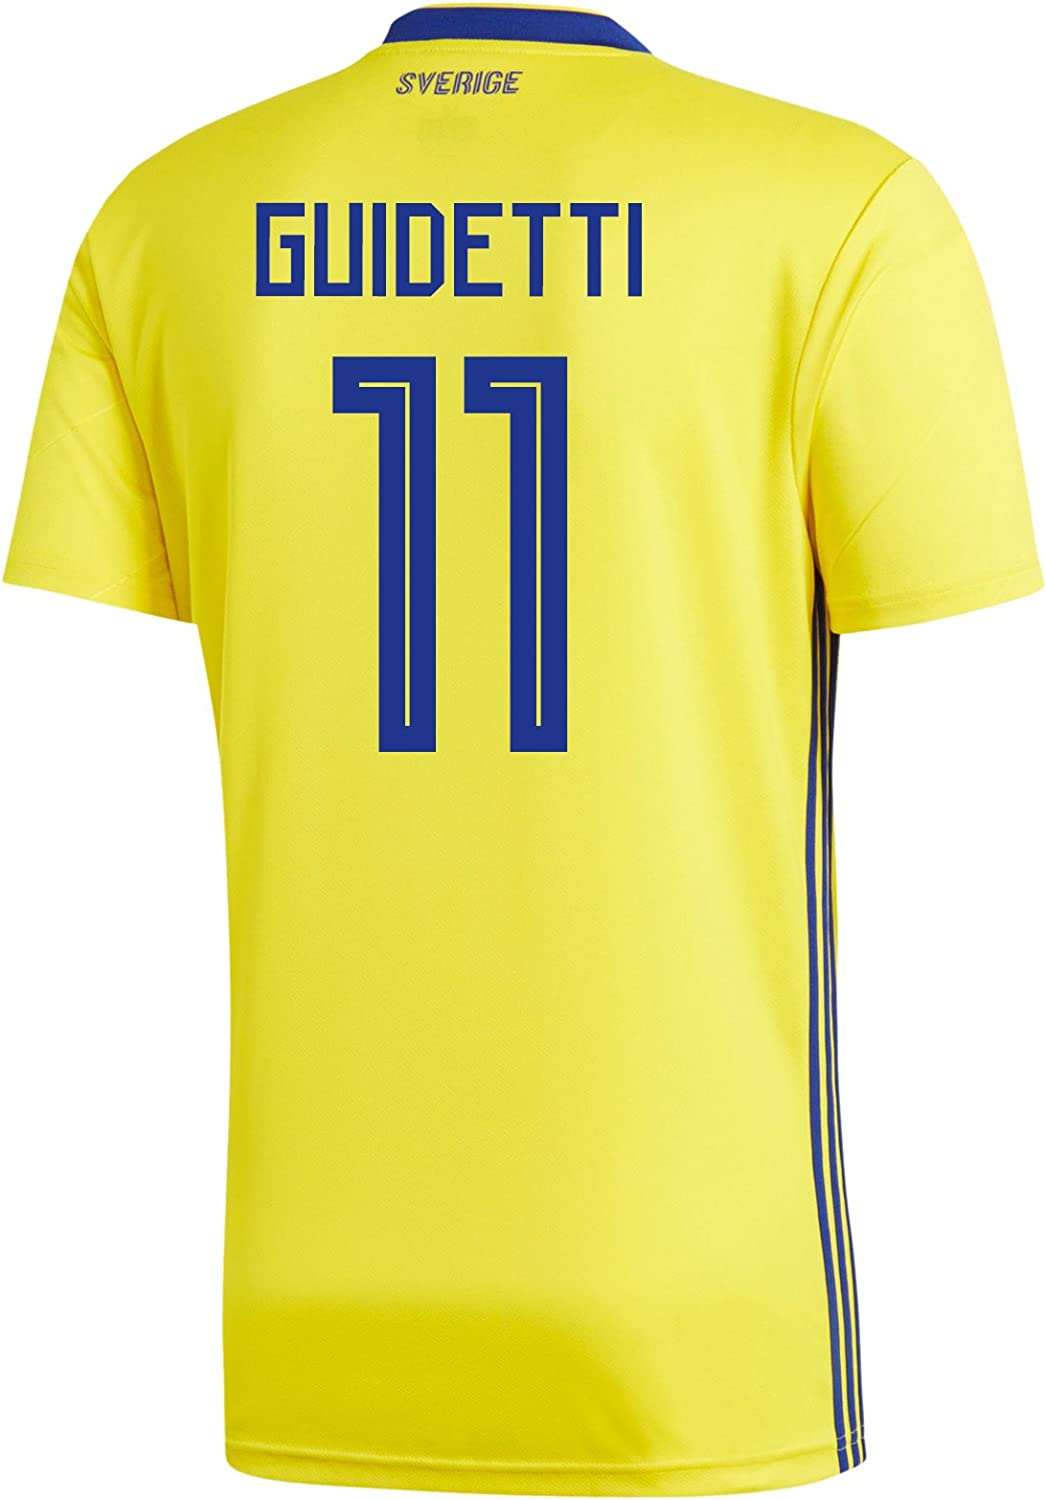 739c69bf Adidas GUIDETTI 11 Sweden Home Men's Soccer Jersey World Jersey Russia 2018